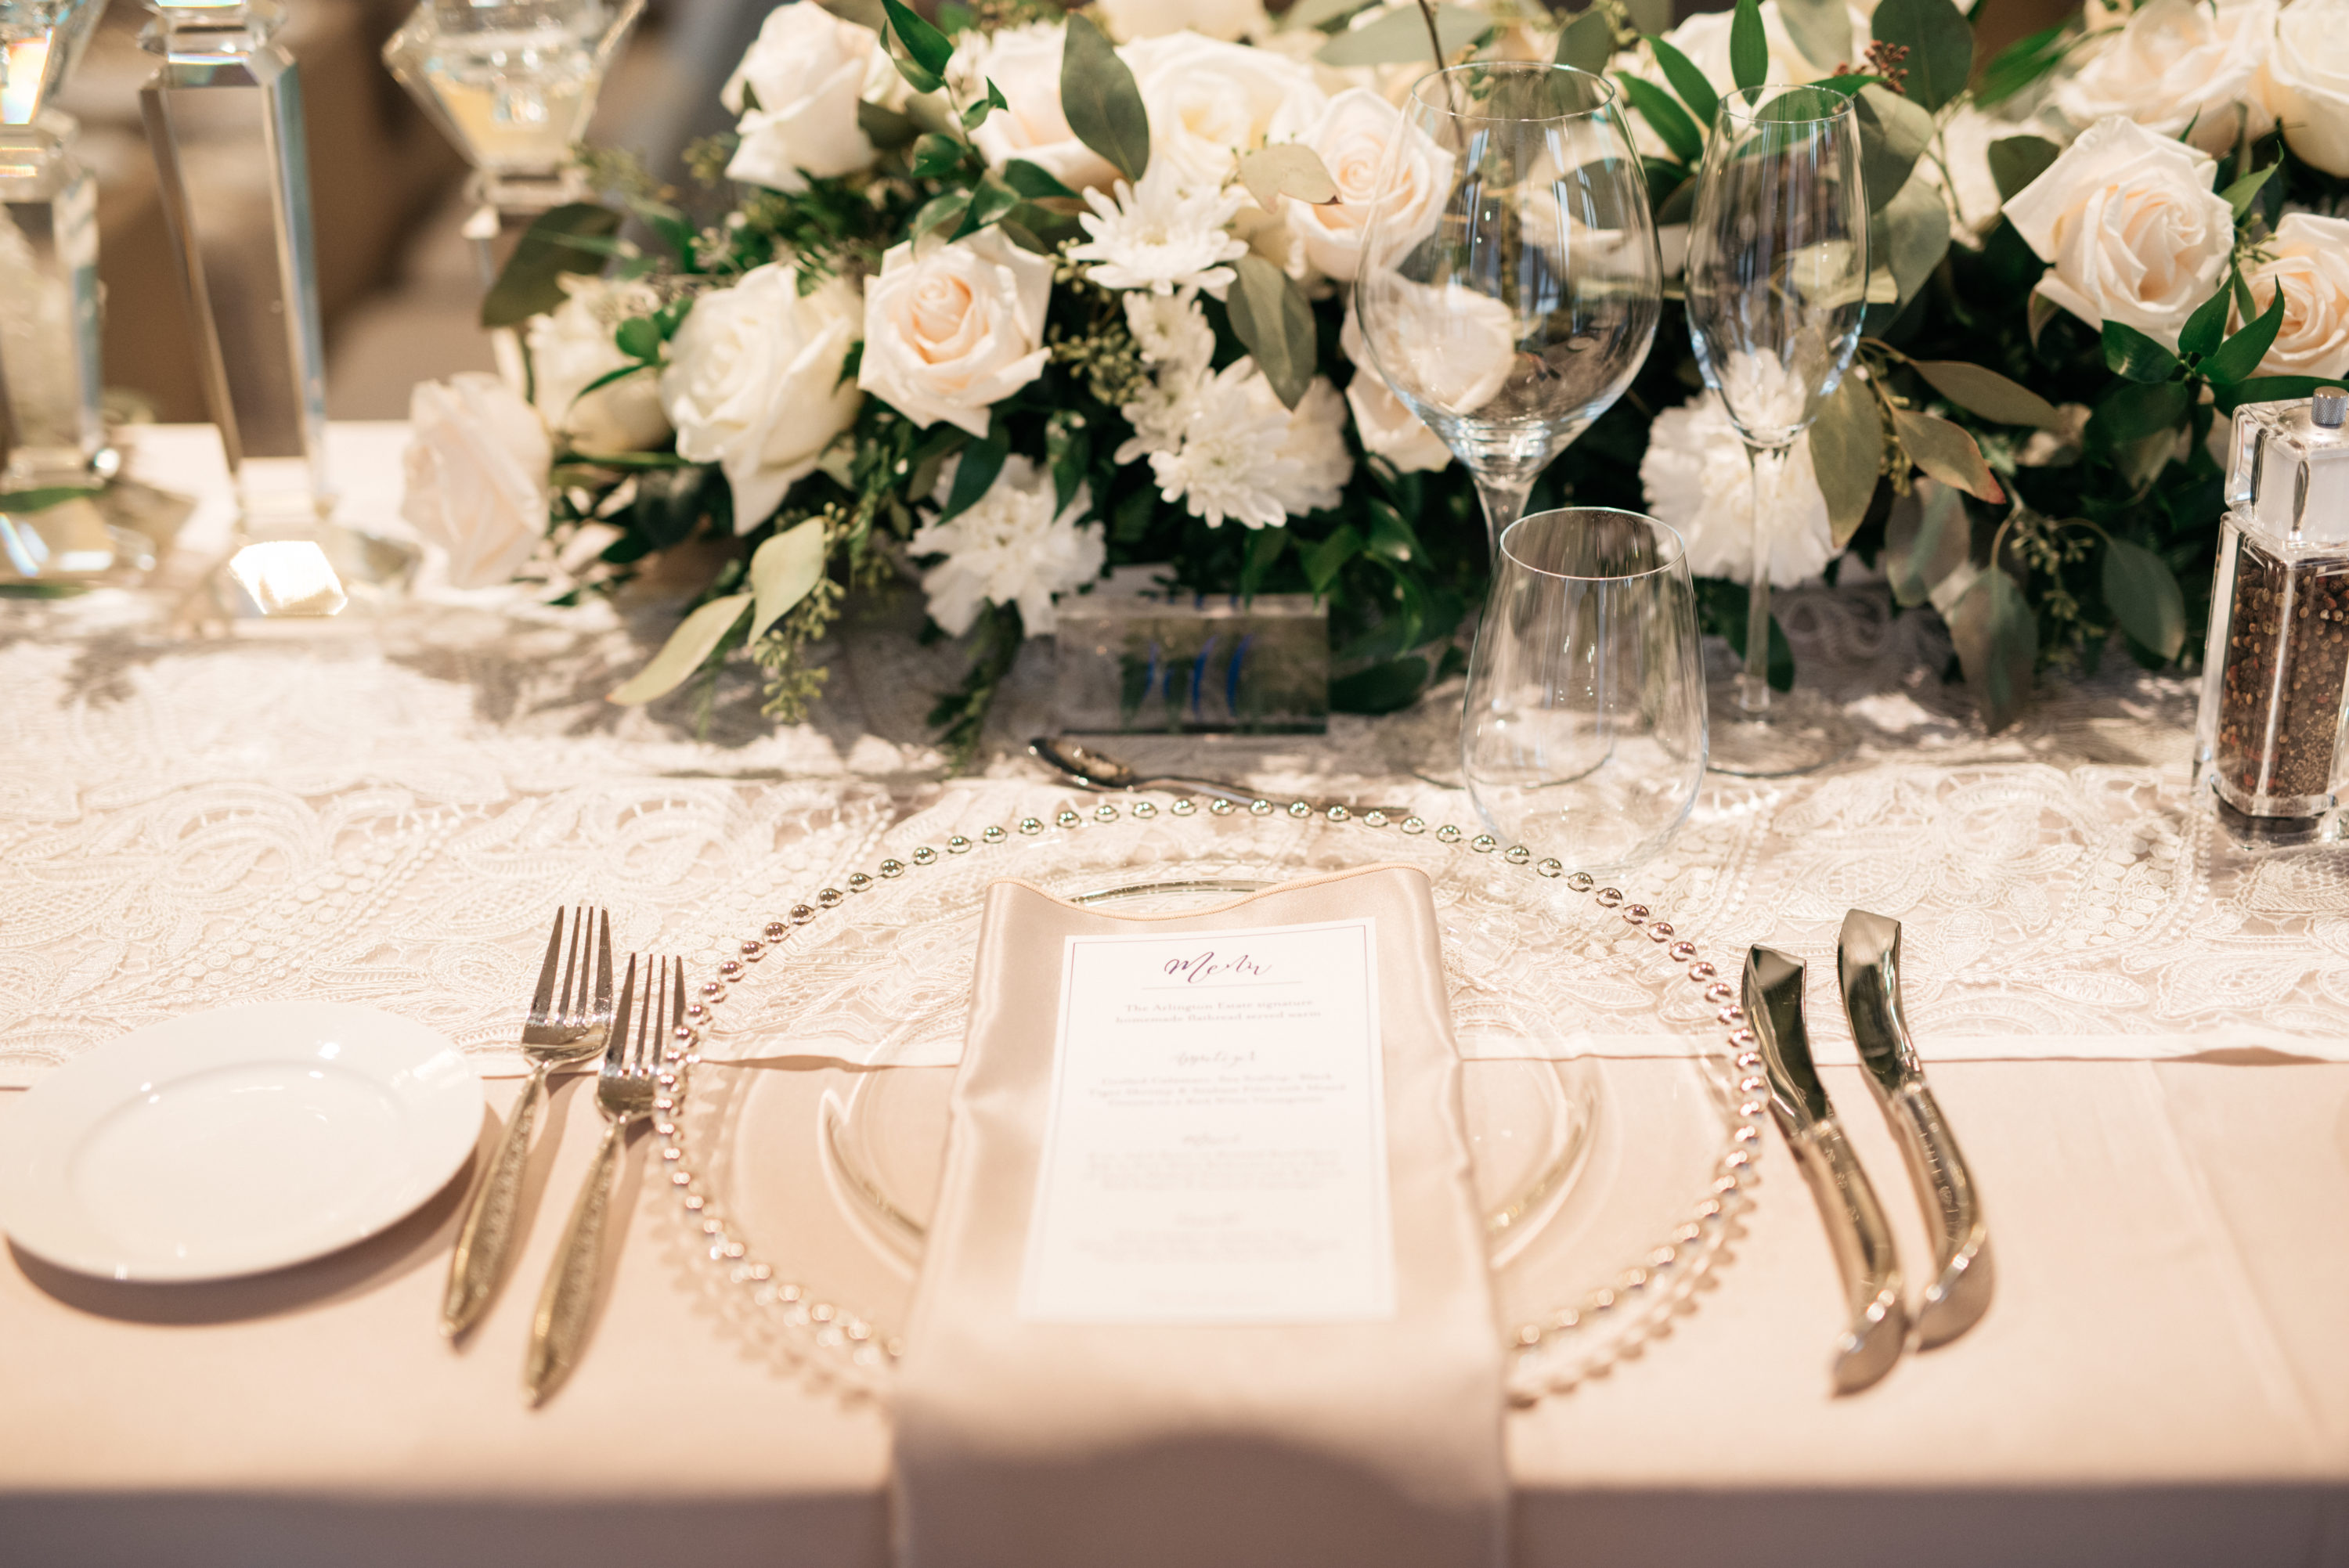 Table setting in The Arlington Estate venue